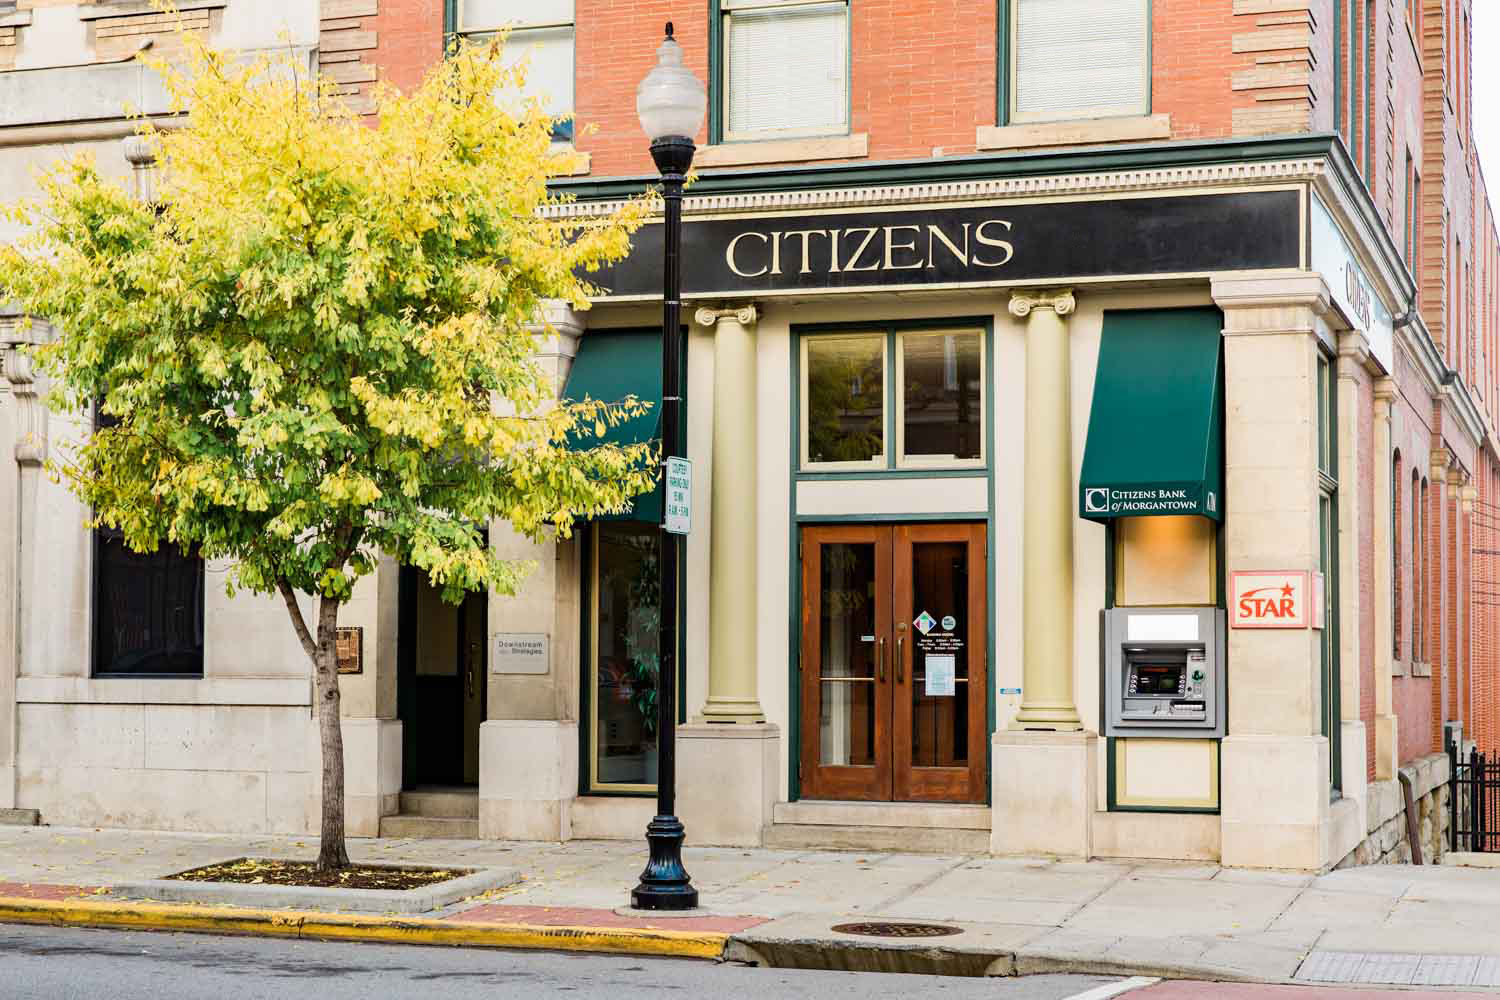 Citizens Bank of Morgantown, Inc.